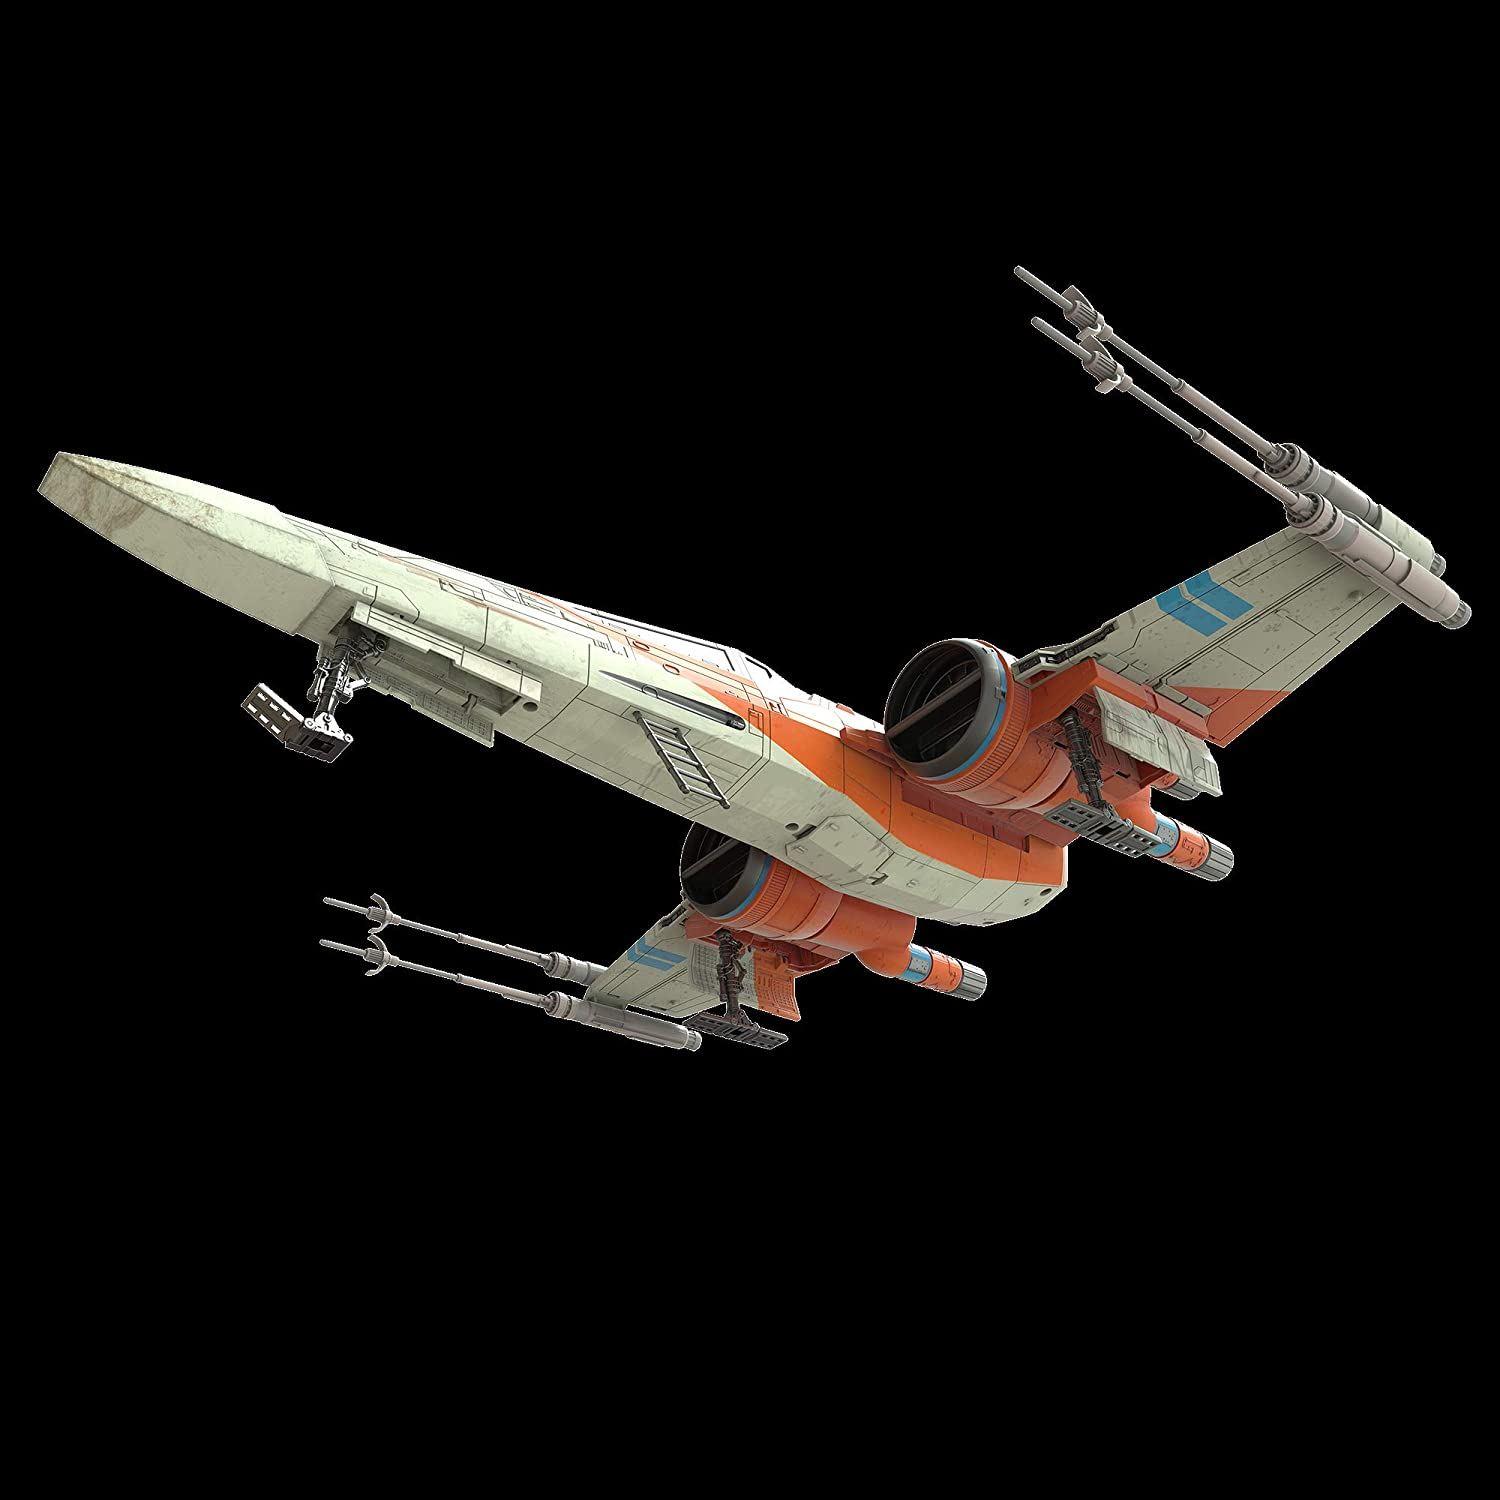 Star Wars The Rise of Skywalker Vintage Collection Poe Dameron's X-Wing Fighter